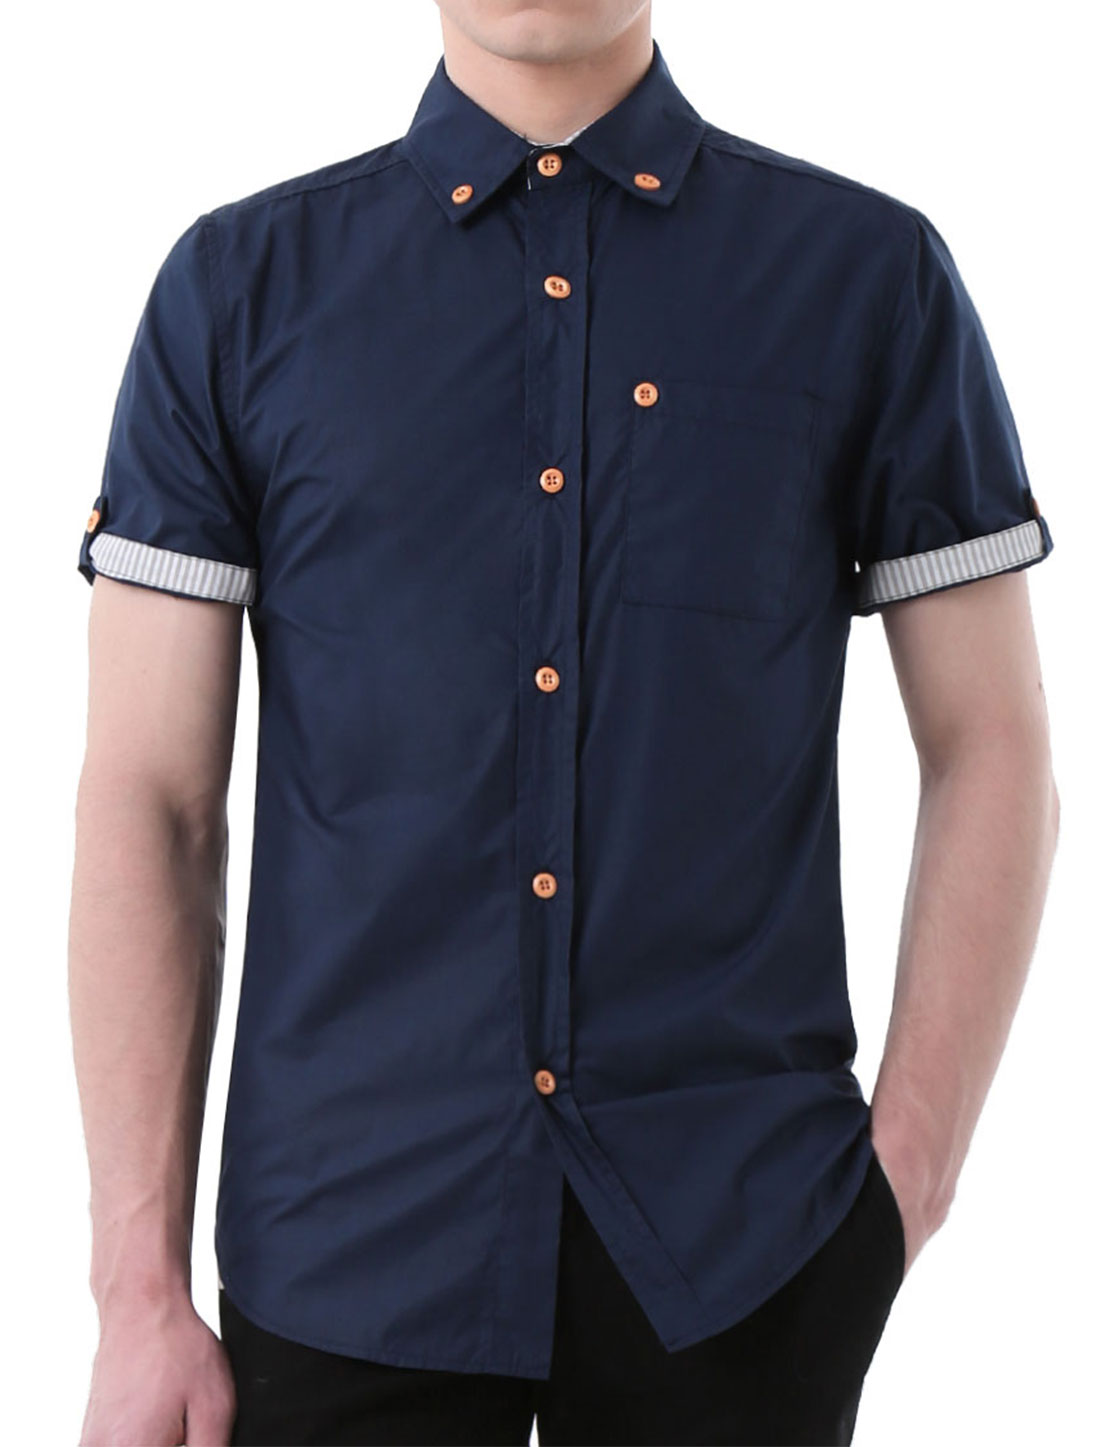 Men Short Sleeves Slim Fit Button Down Shirt w Pocket Navy Blue L